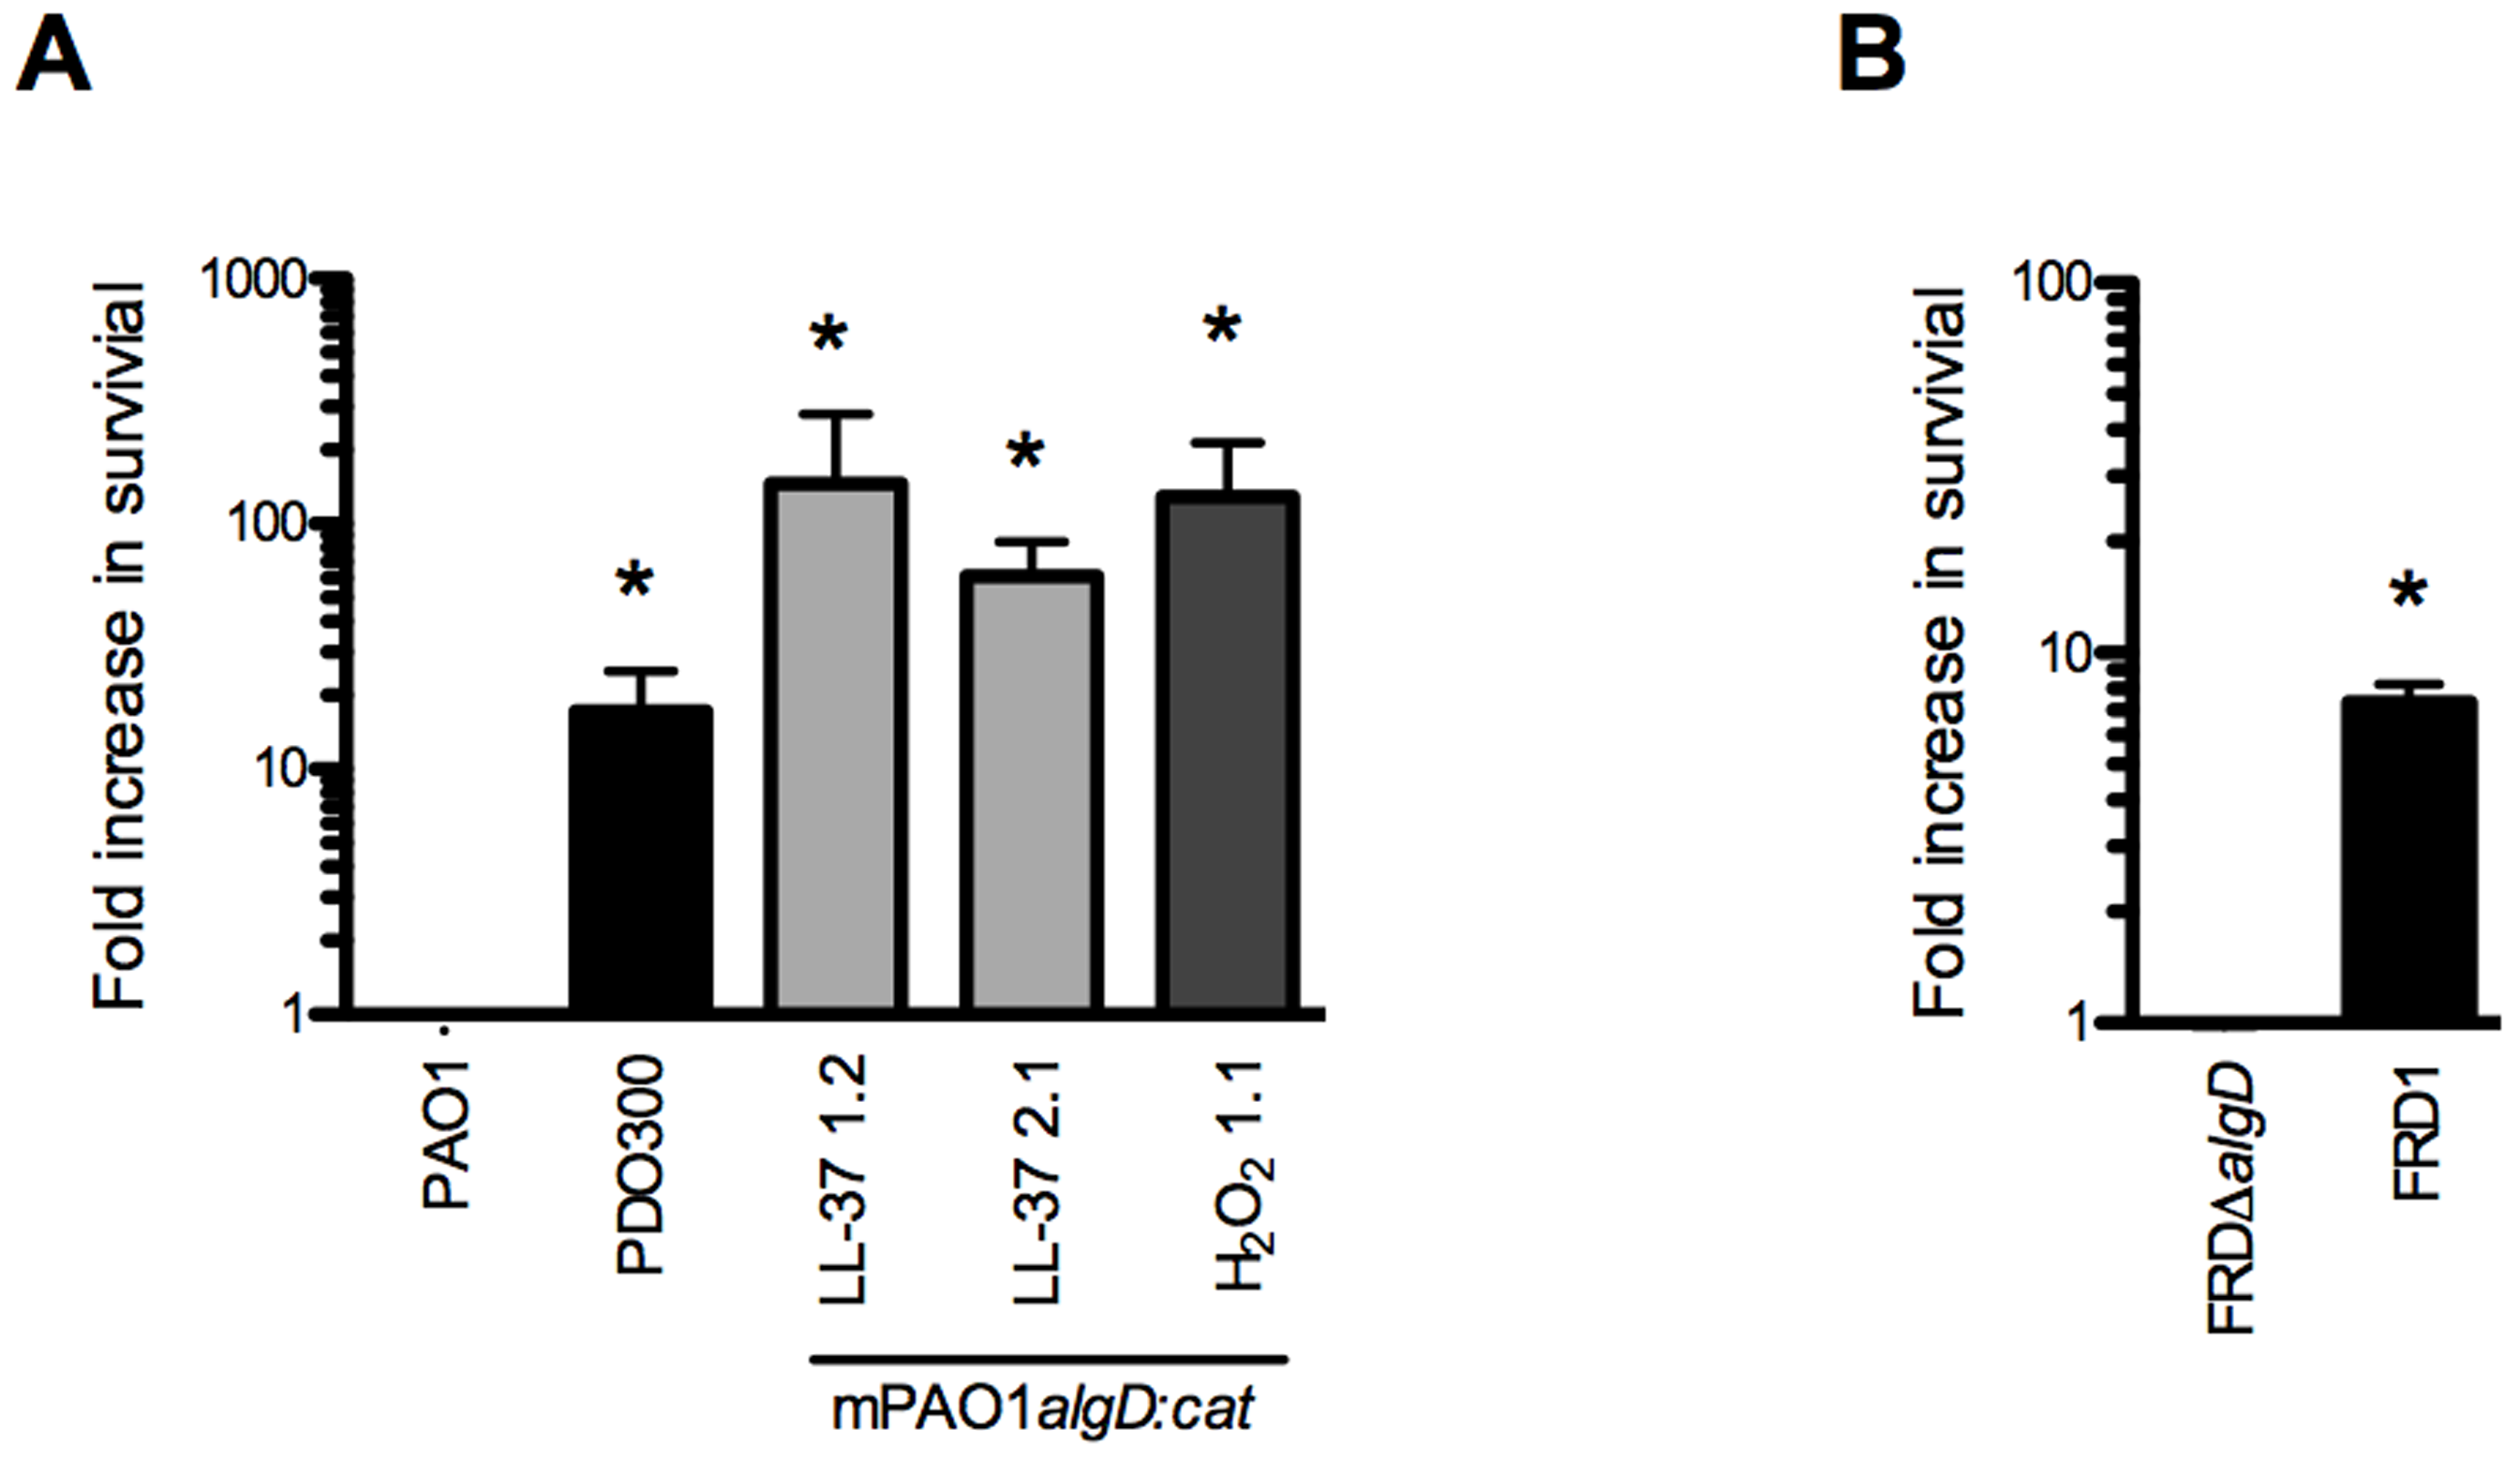 Alginate provides <i>P. aeruginosa</i> protection from lethal concentrations of LL-37.